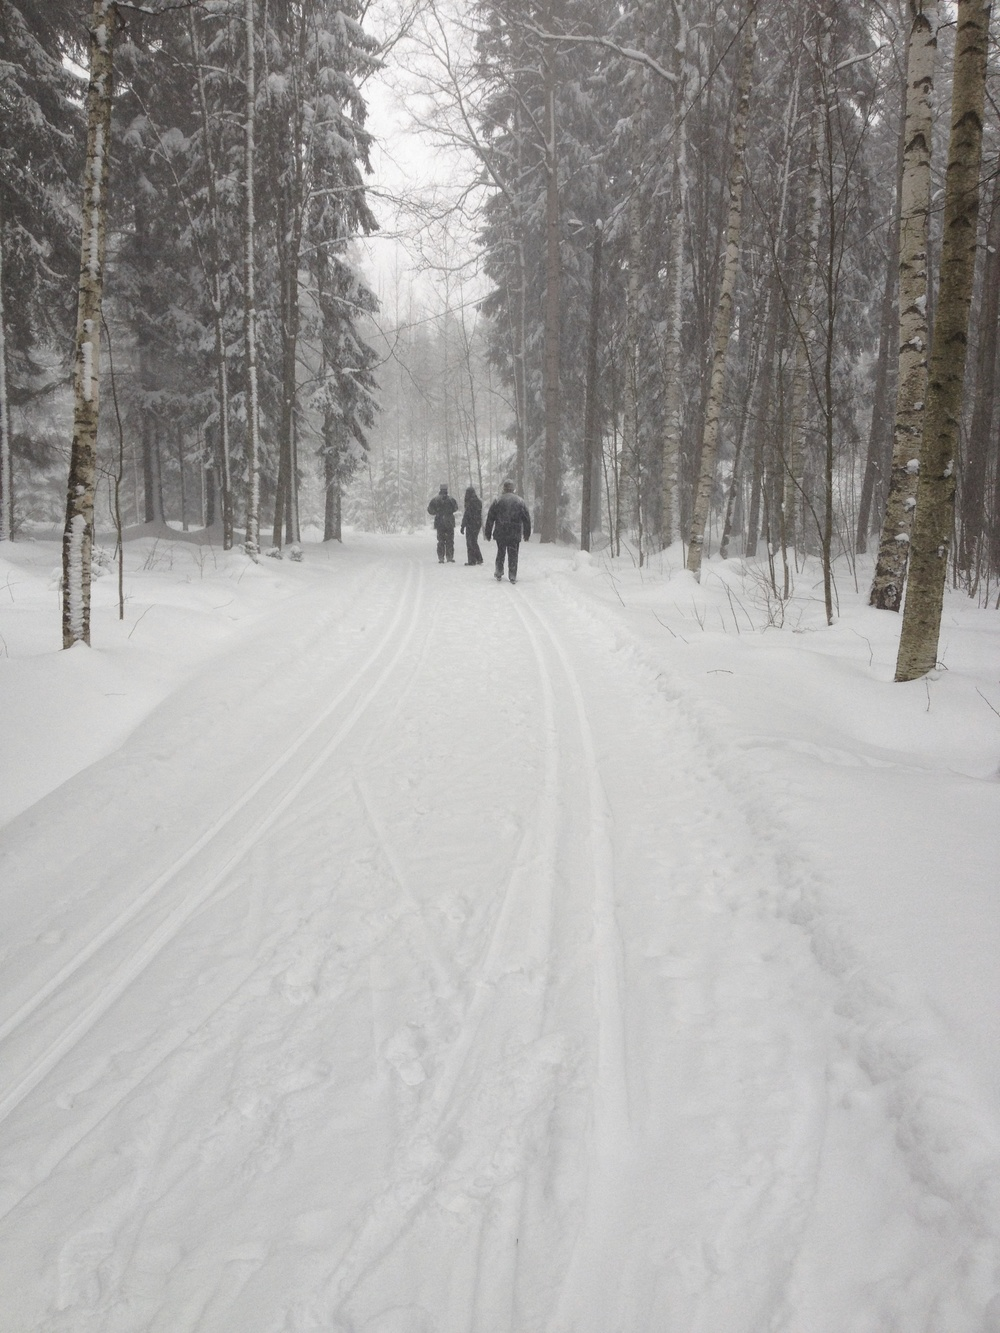 A ski path through the trees. This was taken near Helsinki on Christmas Day 2012, a perfect white Christmas.